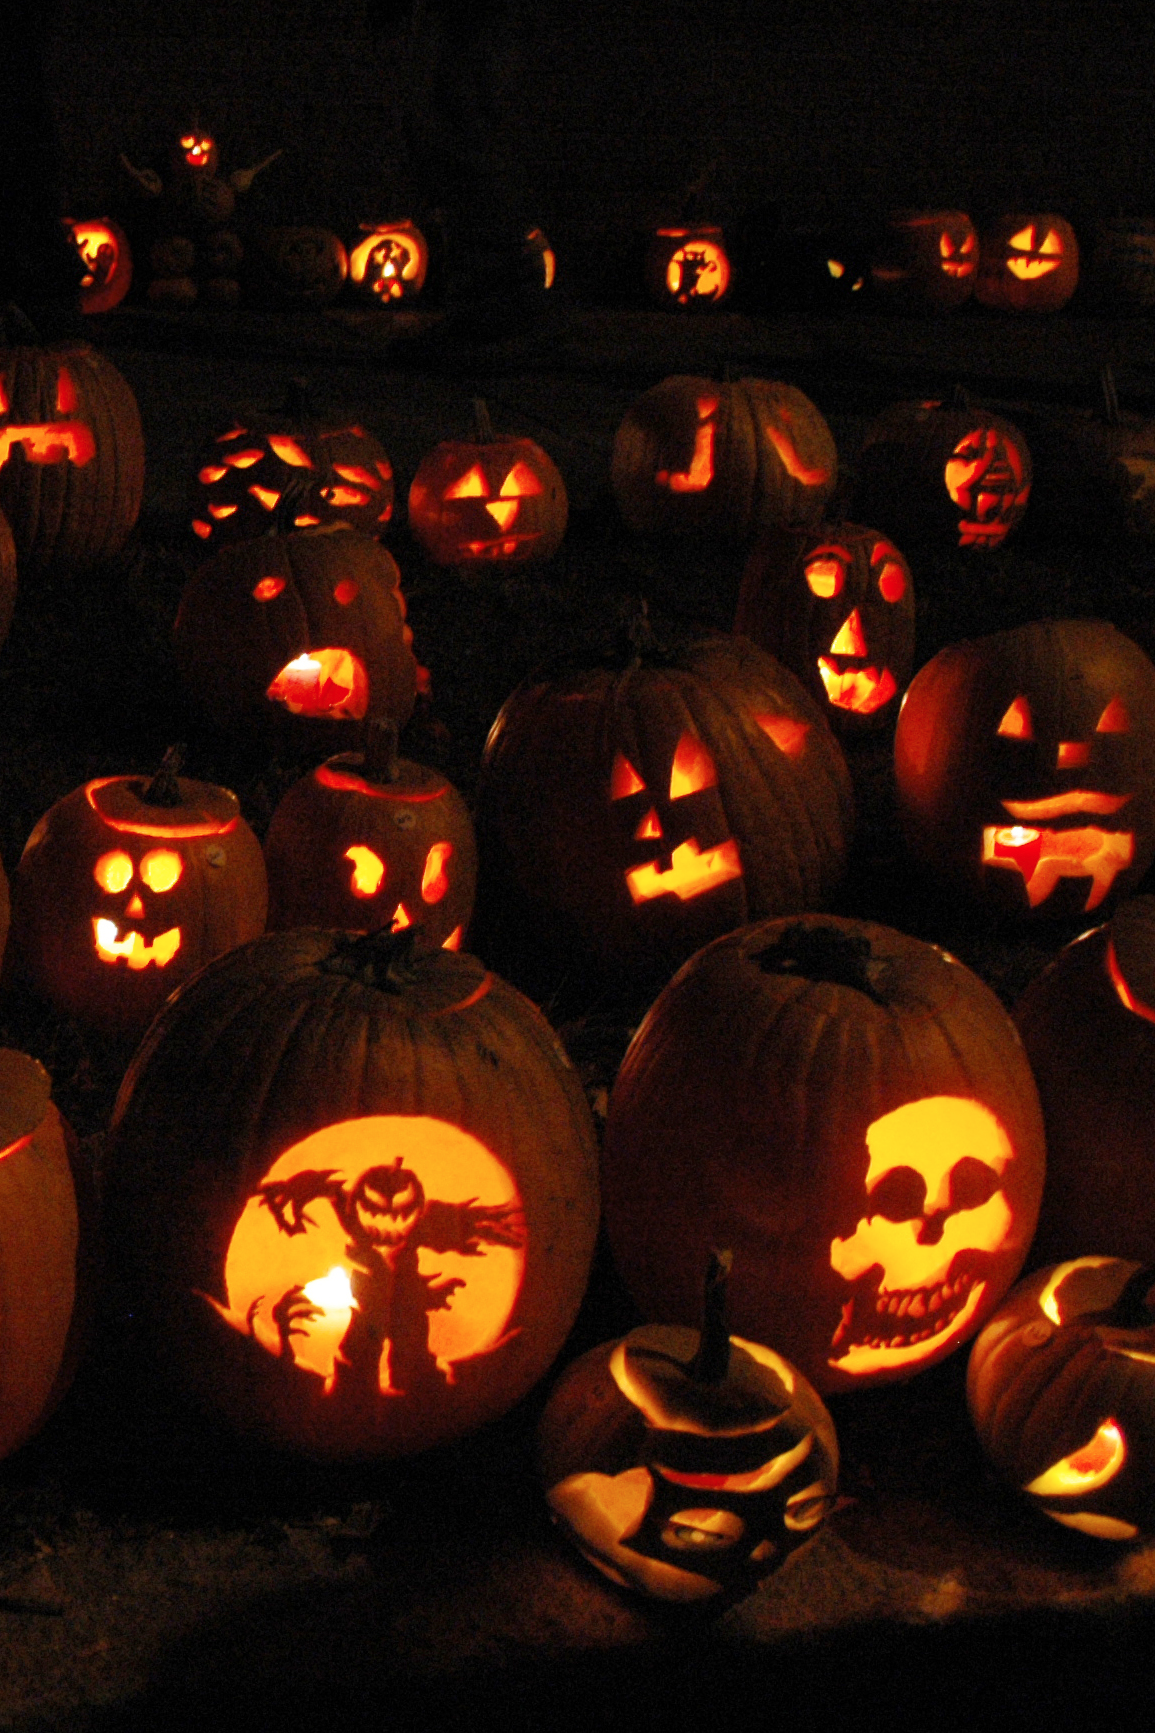 49 Free Templates For the Coolest Jack-o\'-Lantern on the Block ...